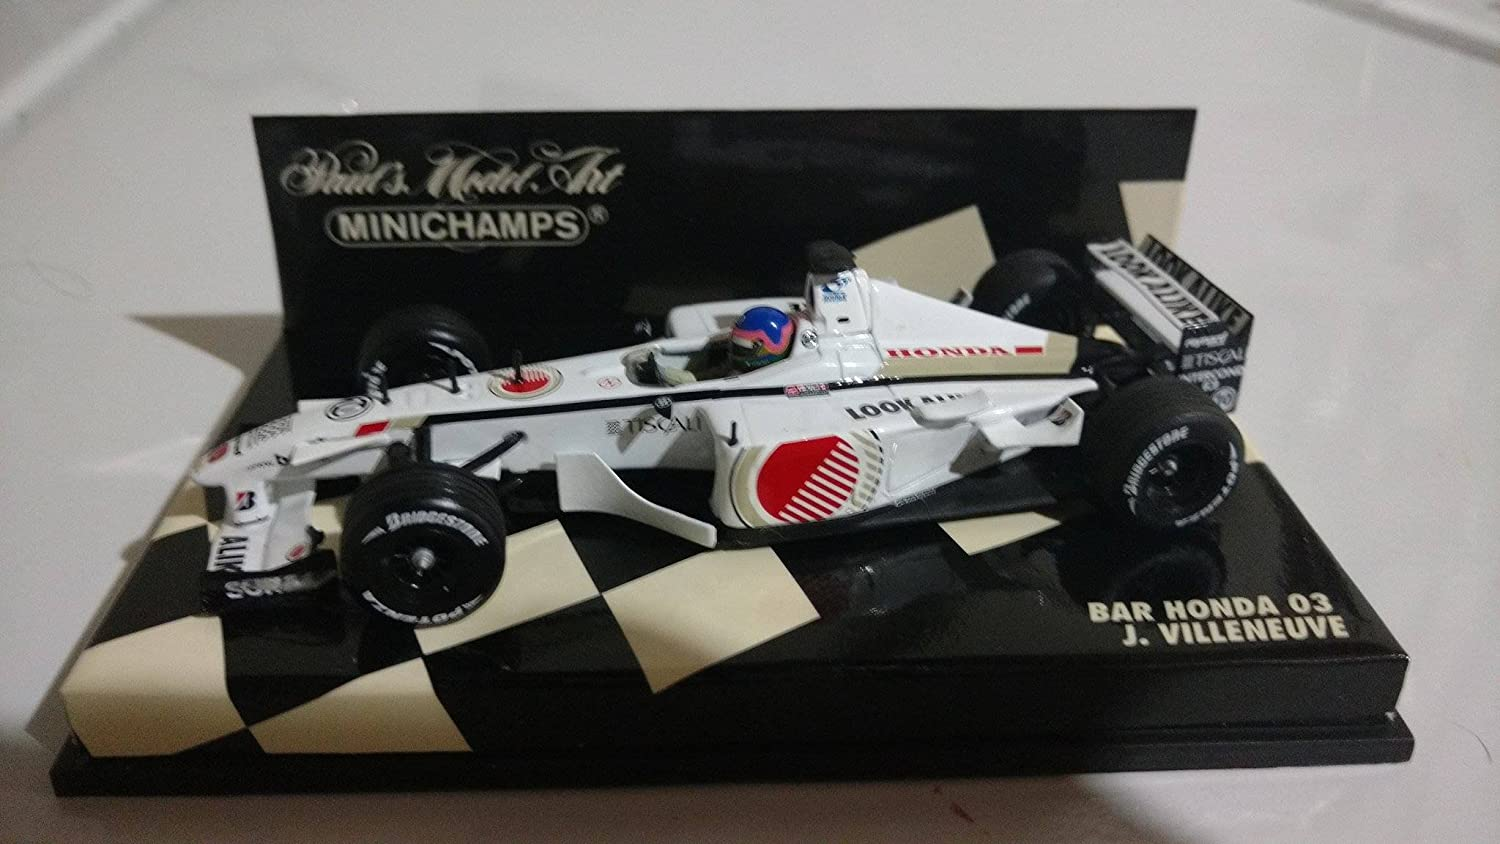 Minichamps F1 1/43 Scale - 400010010 03 BAR HONDA J.VILLENEUVE